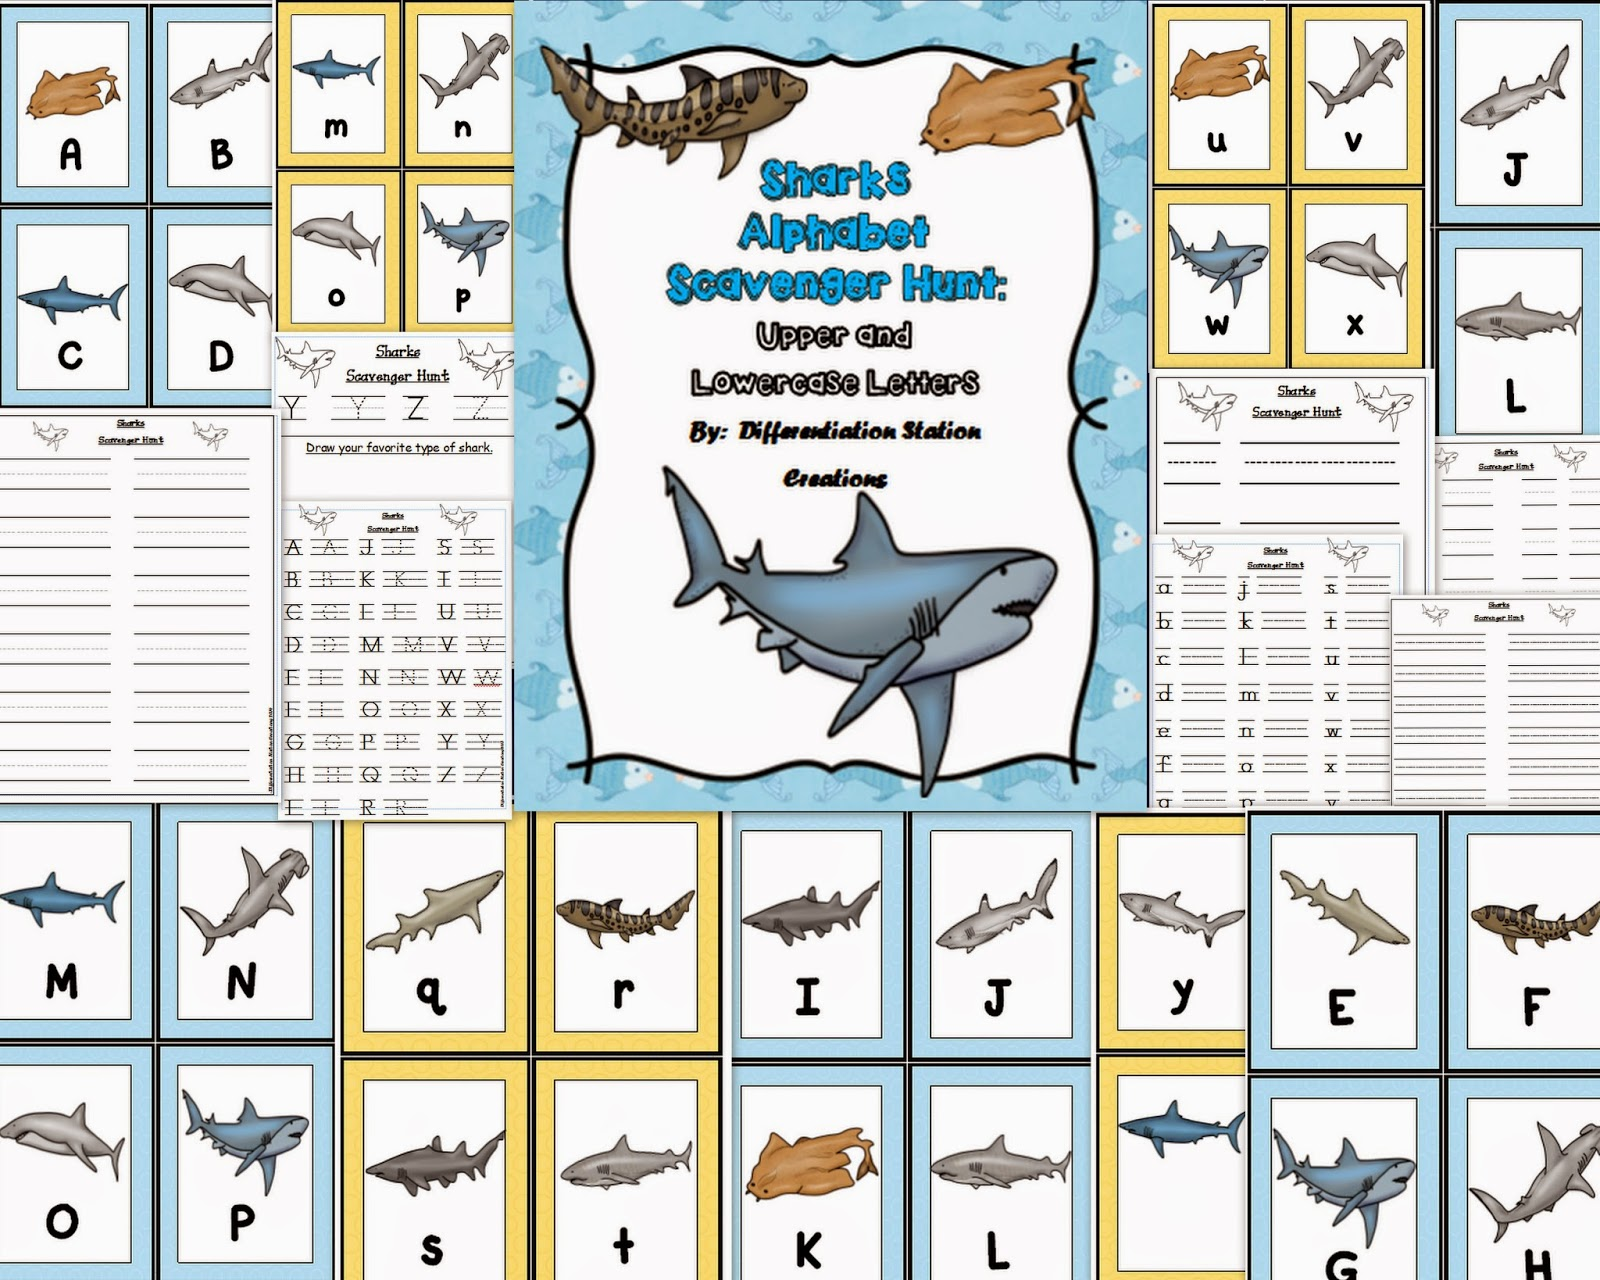 Differentiation Station Creations Wild About Sharks Freebie